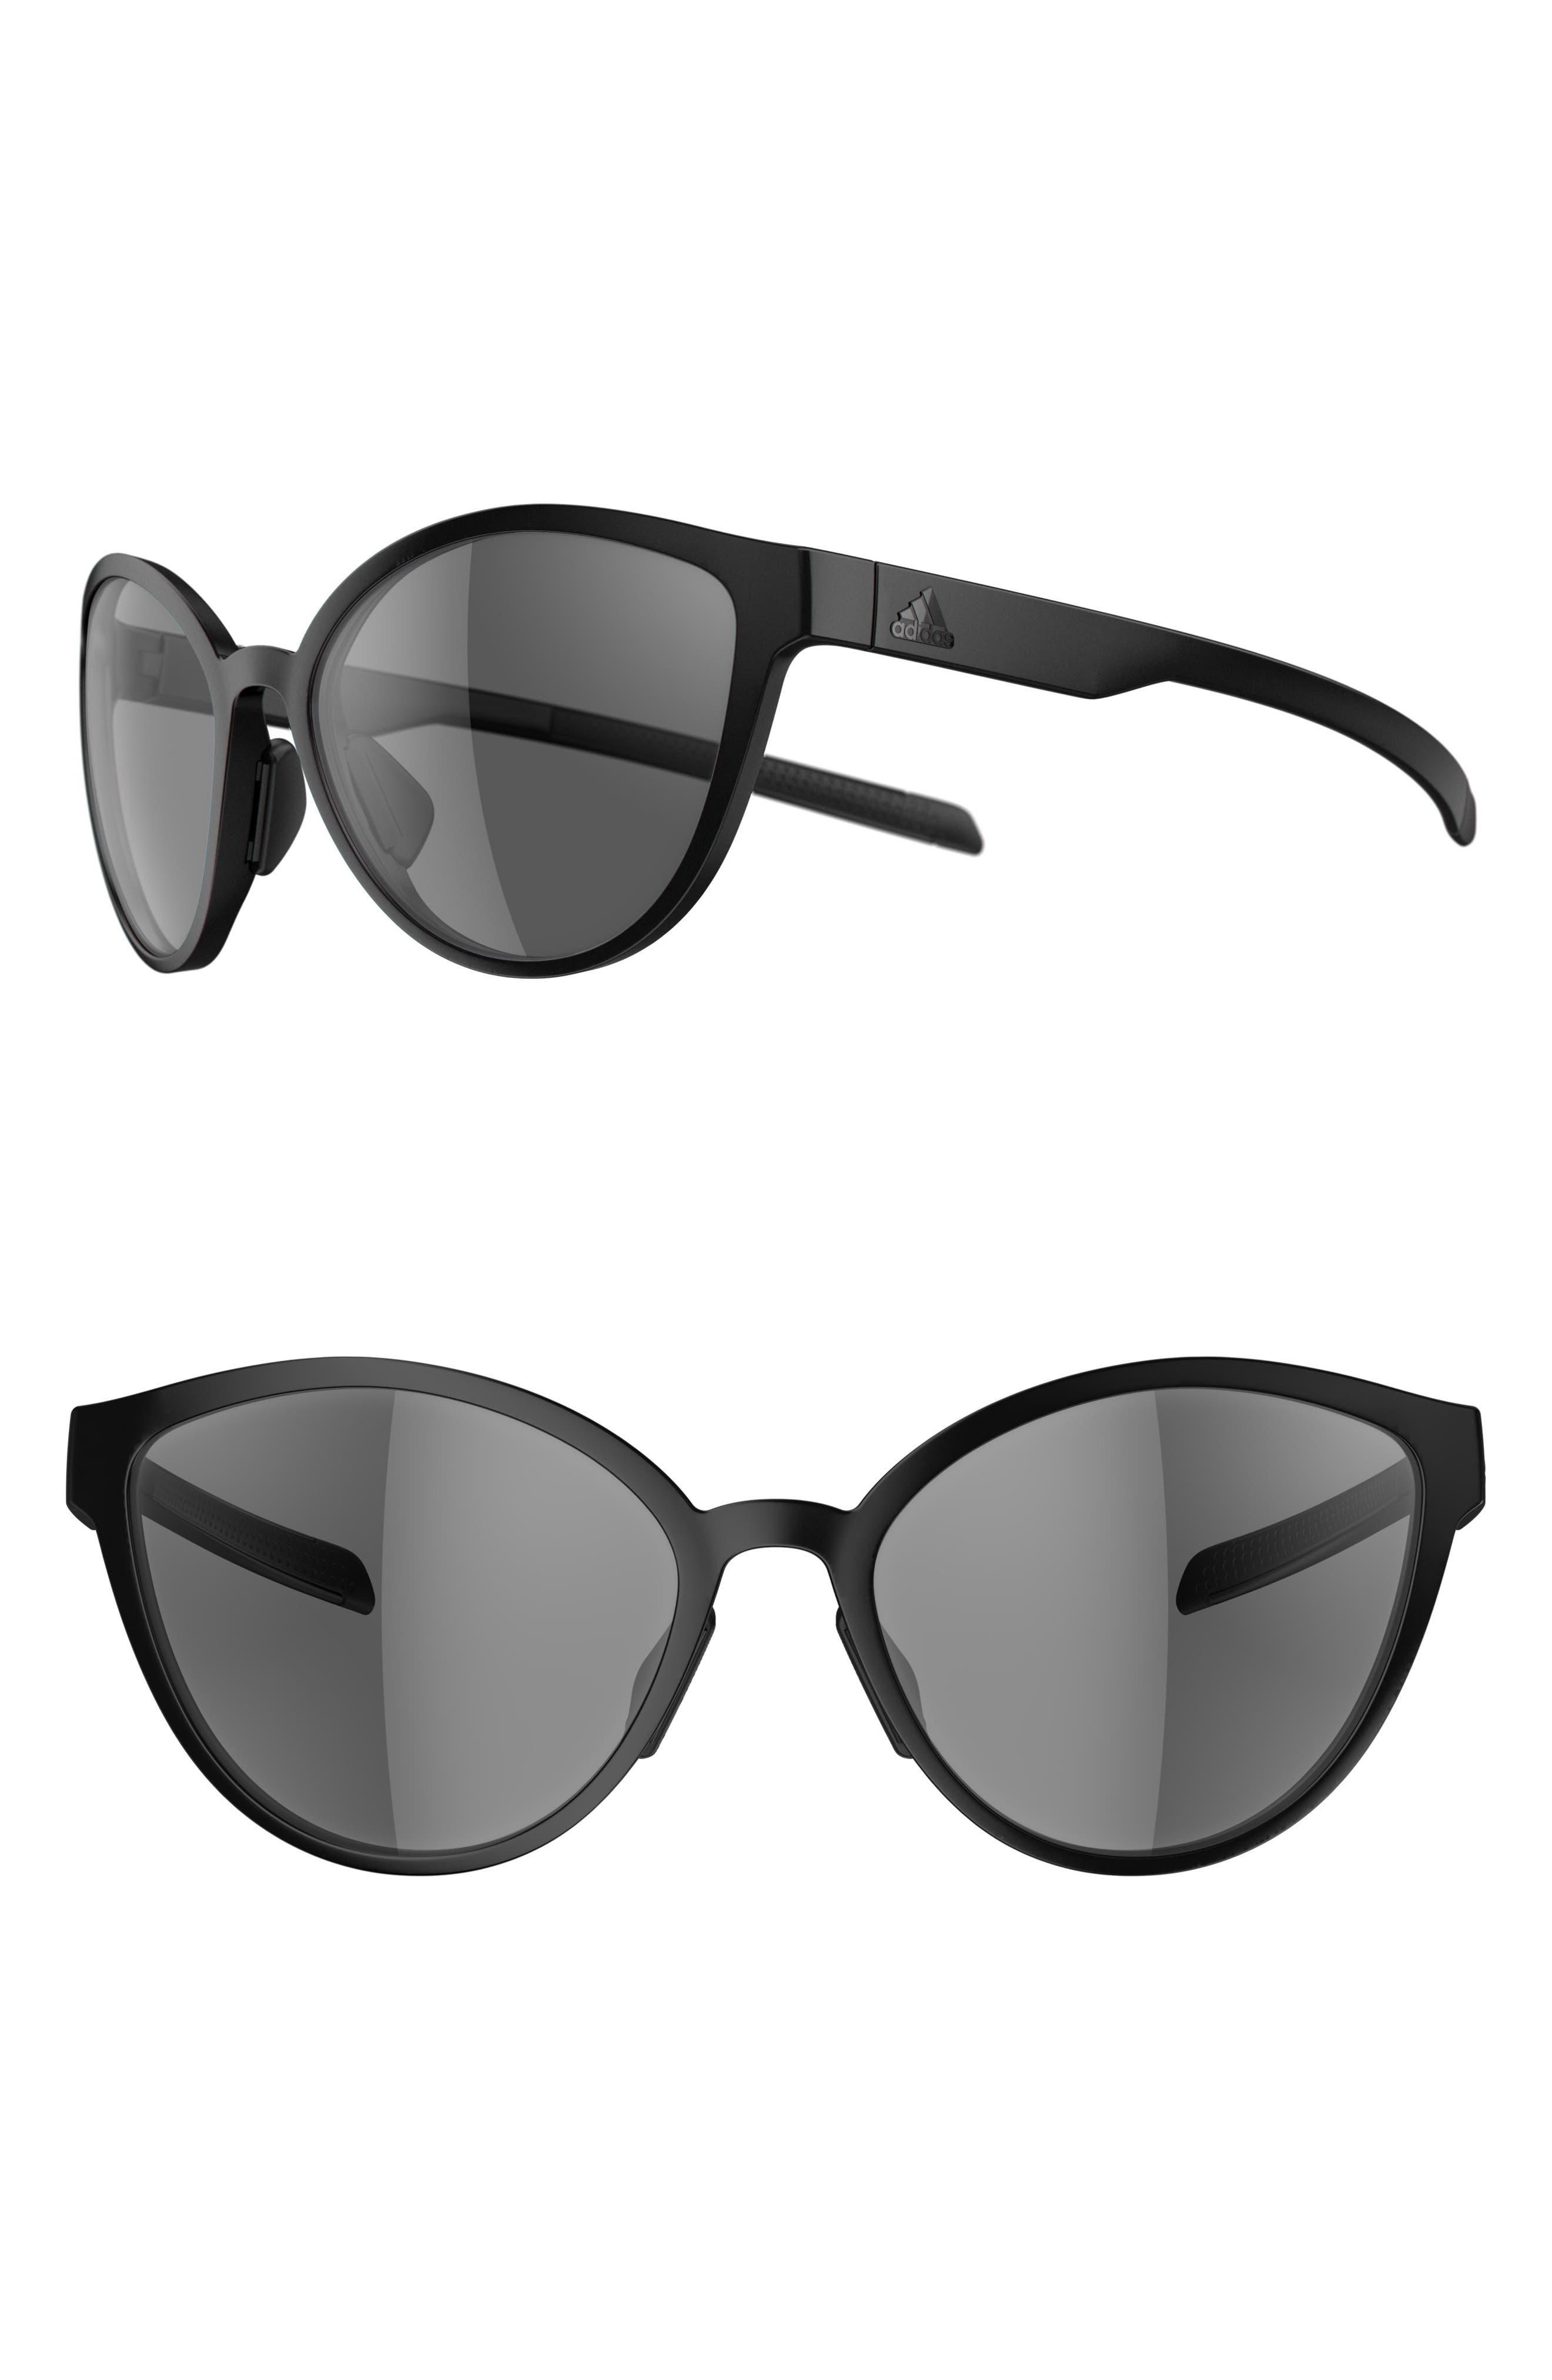 Tempest 56mm Running Sunglasses,                             Main thumbnail 1, color,                             BLACK MATTE/ GREY